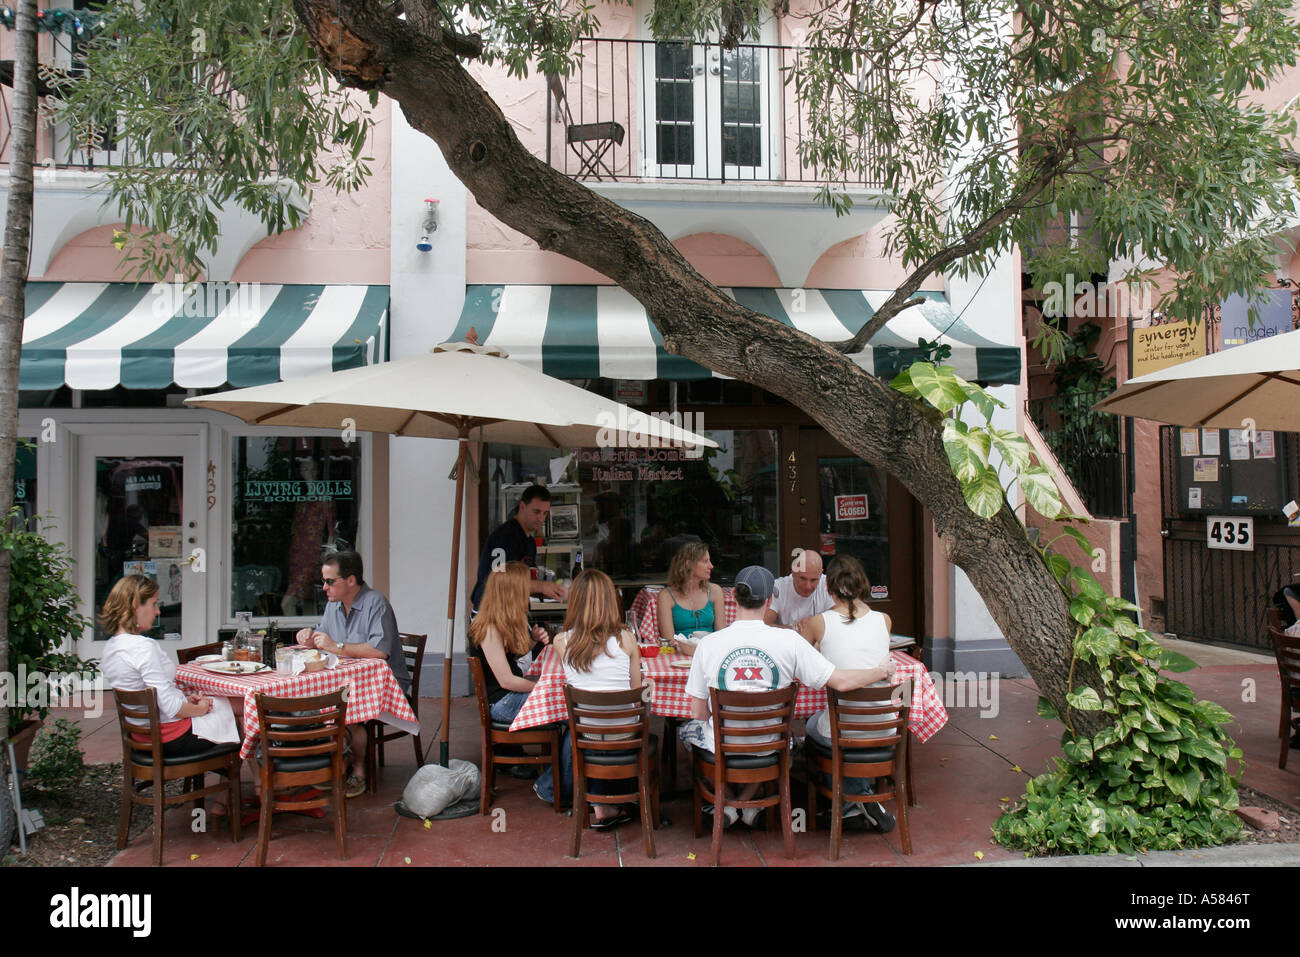 Italian Restaurants On Espanola Way South Beach